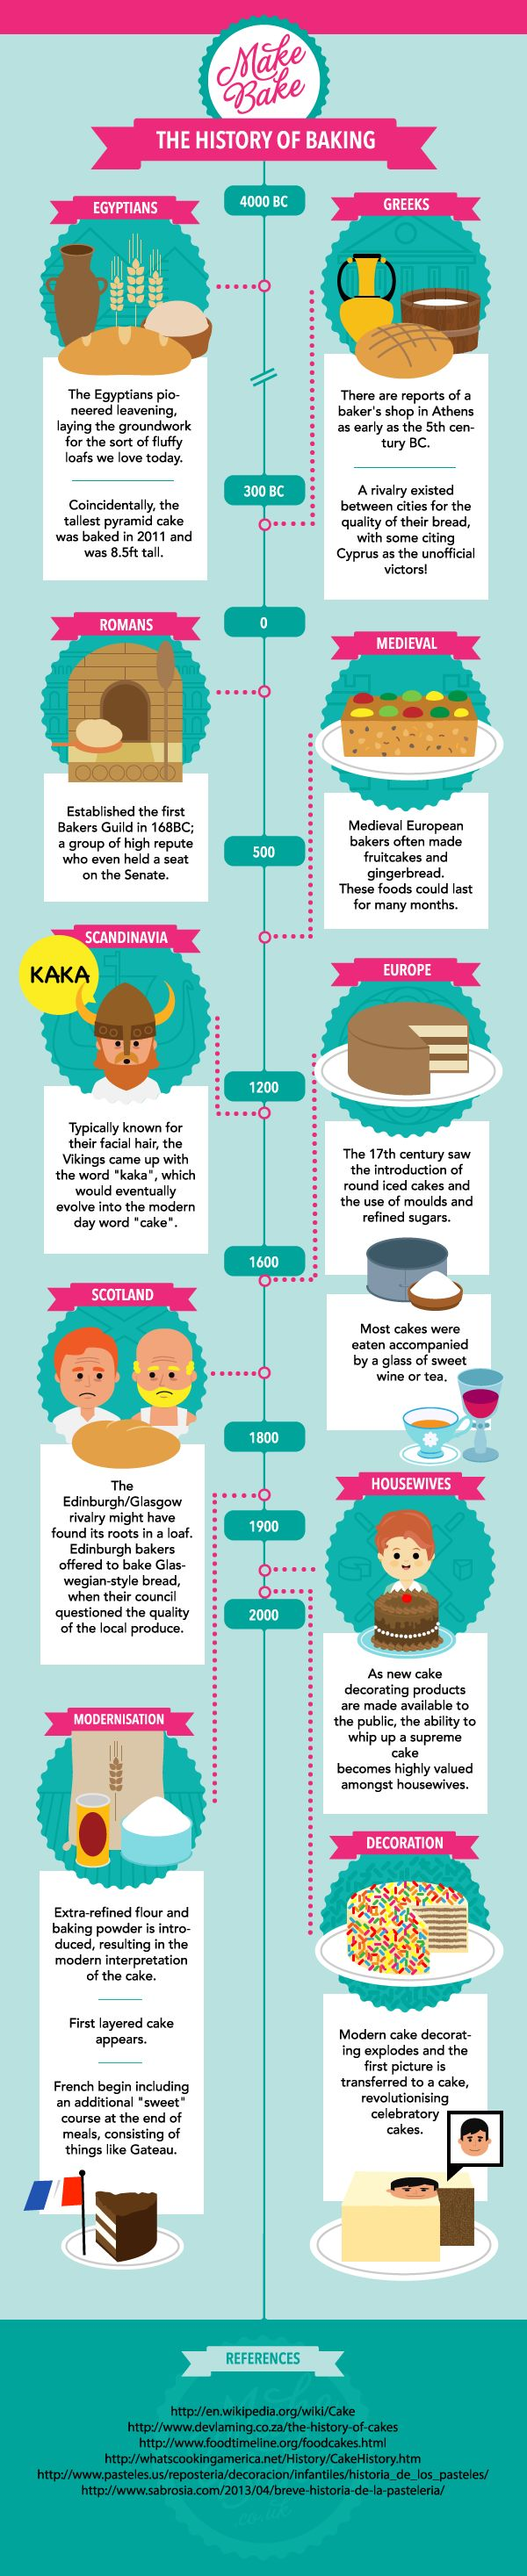 The History of Baking | #culinary #cooking #infographic